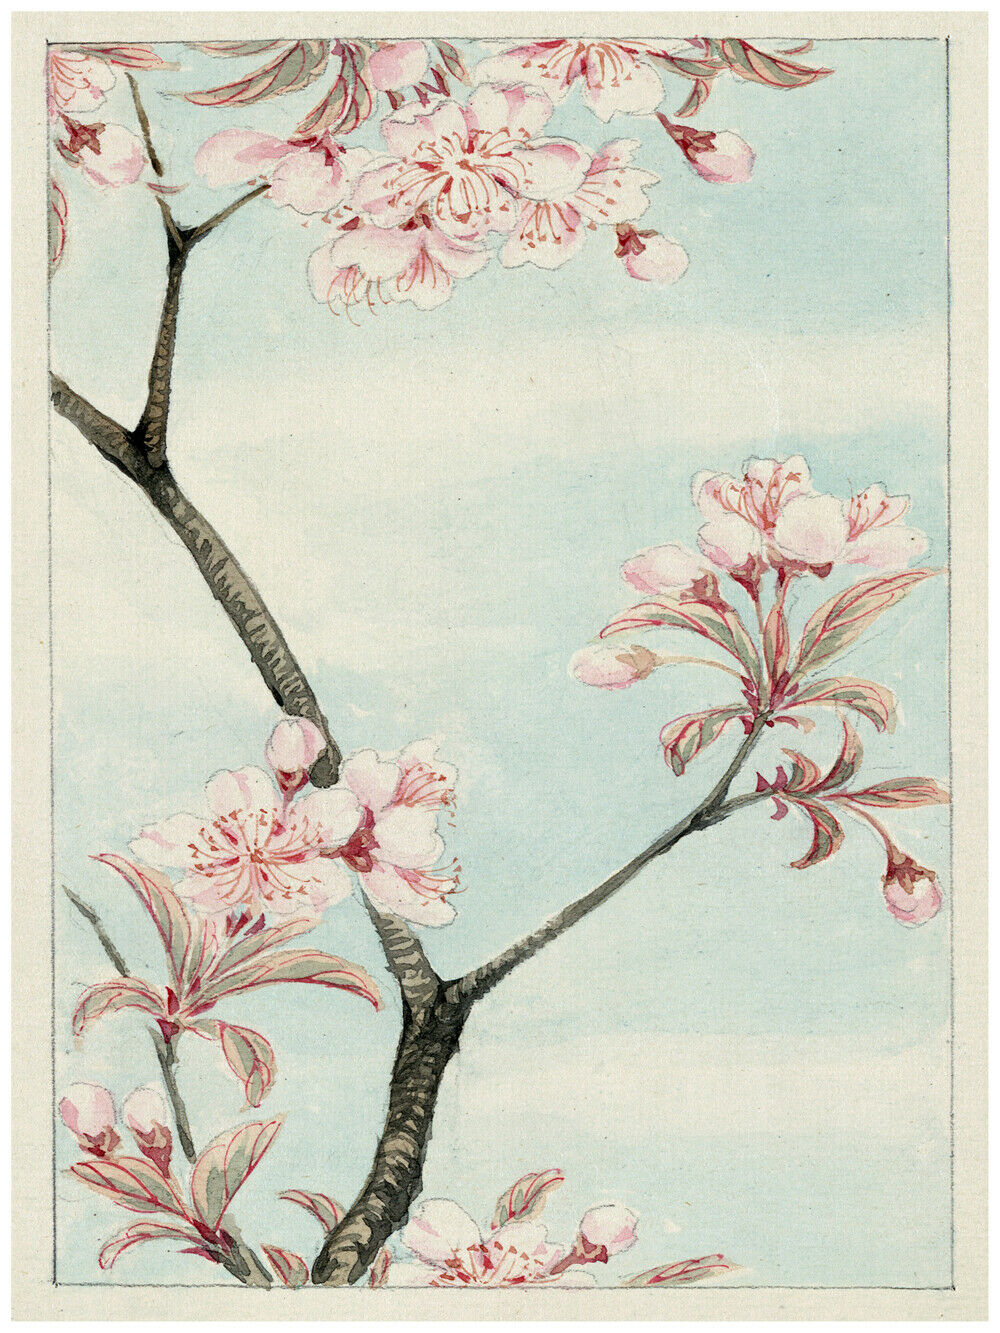 7805.Decoration Poster.Home Room wall interior art design.Japanese flower decor